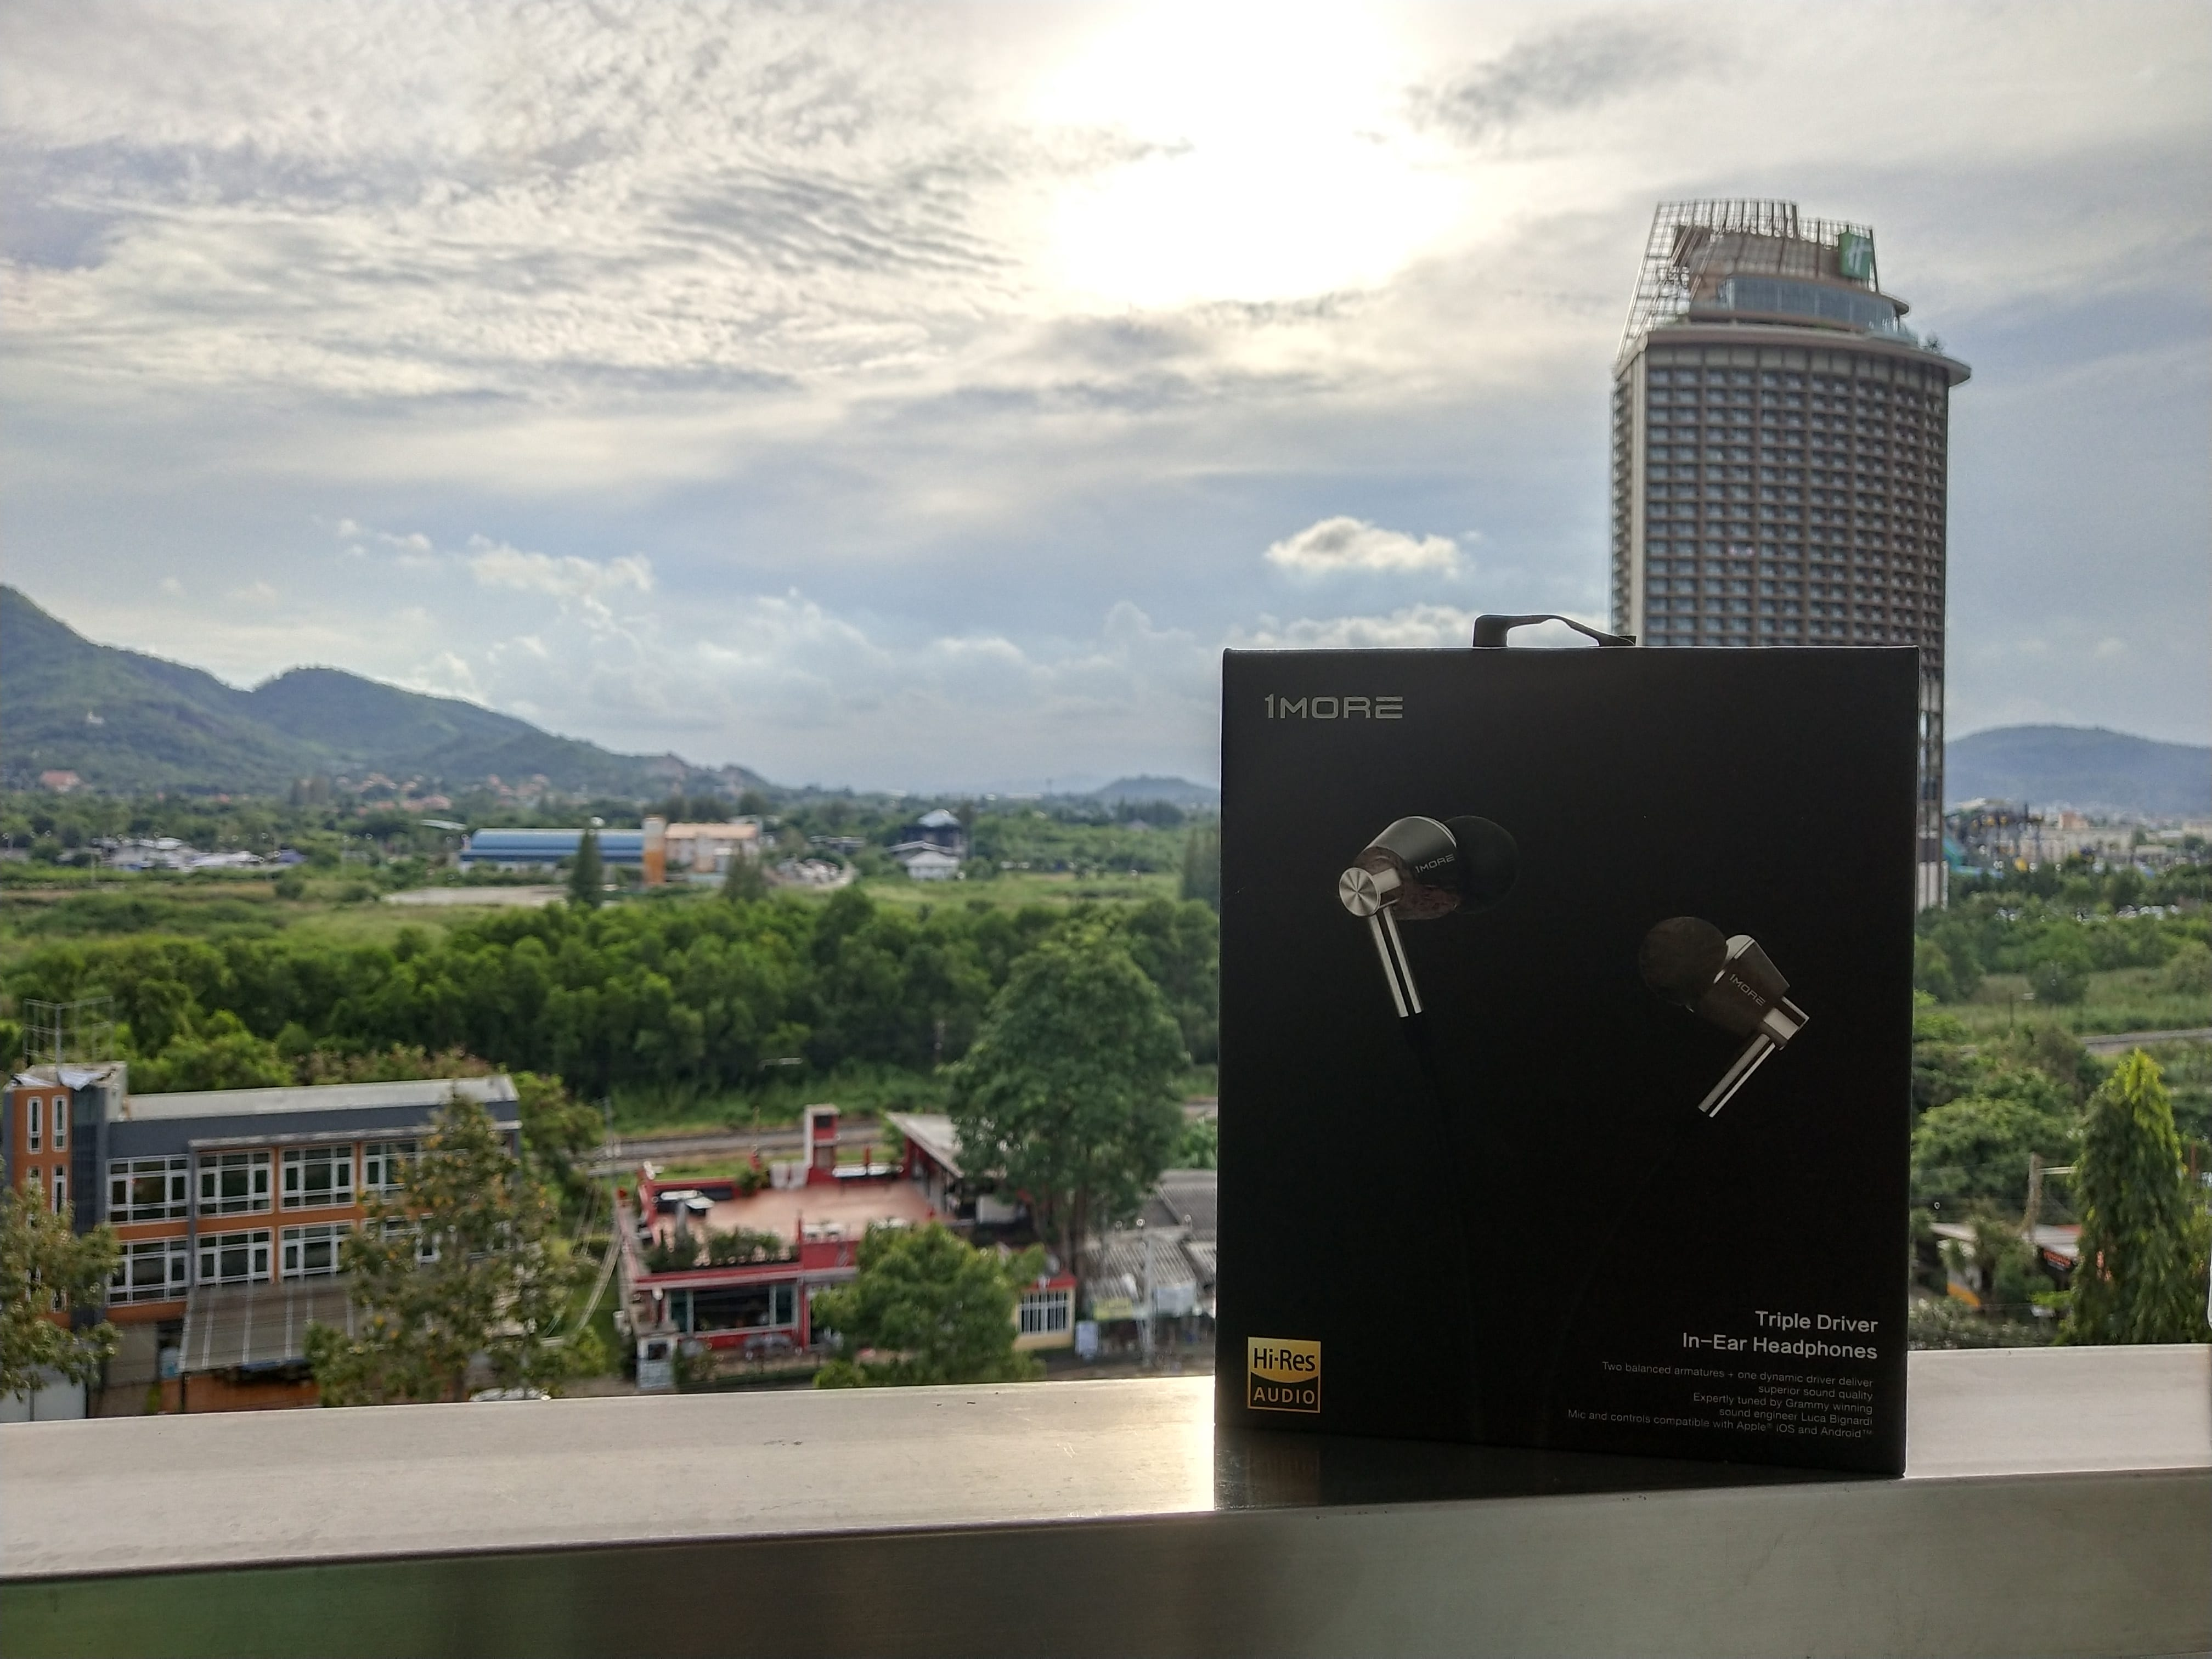 รีวิวหูฟัง 1MORE Triple Driver In-Ear Headphones 1